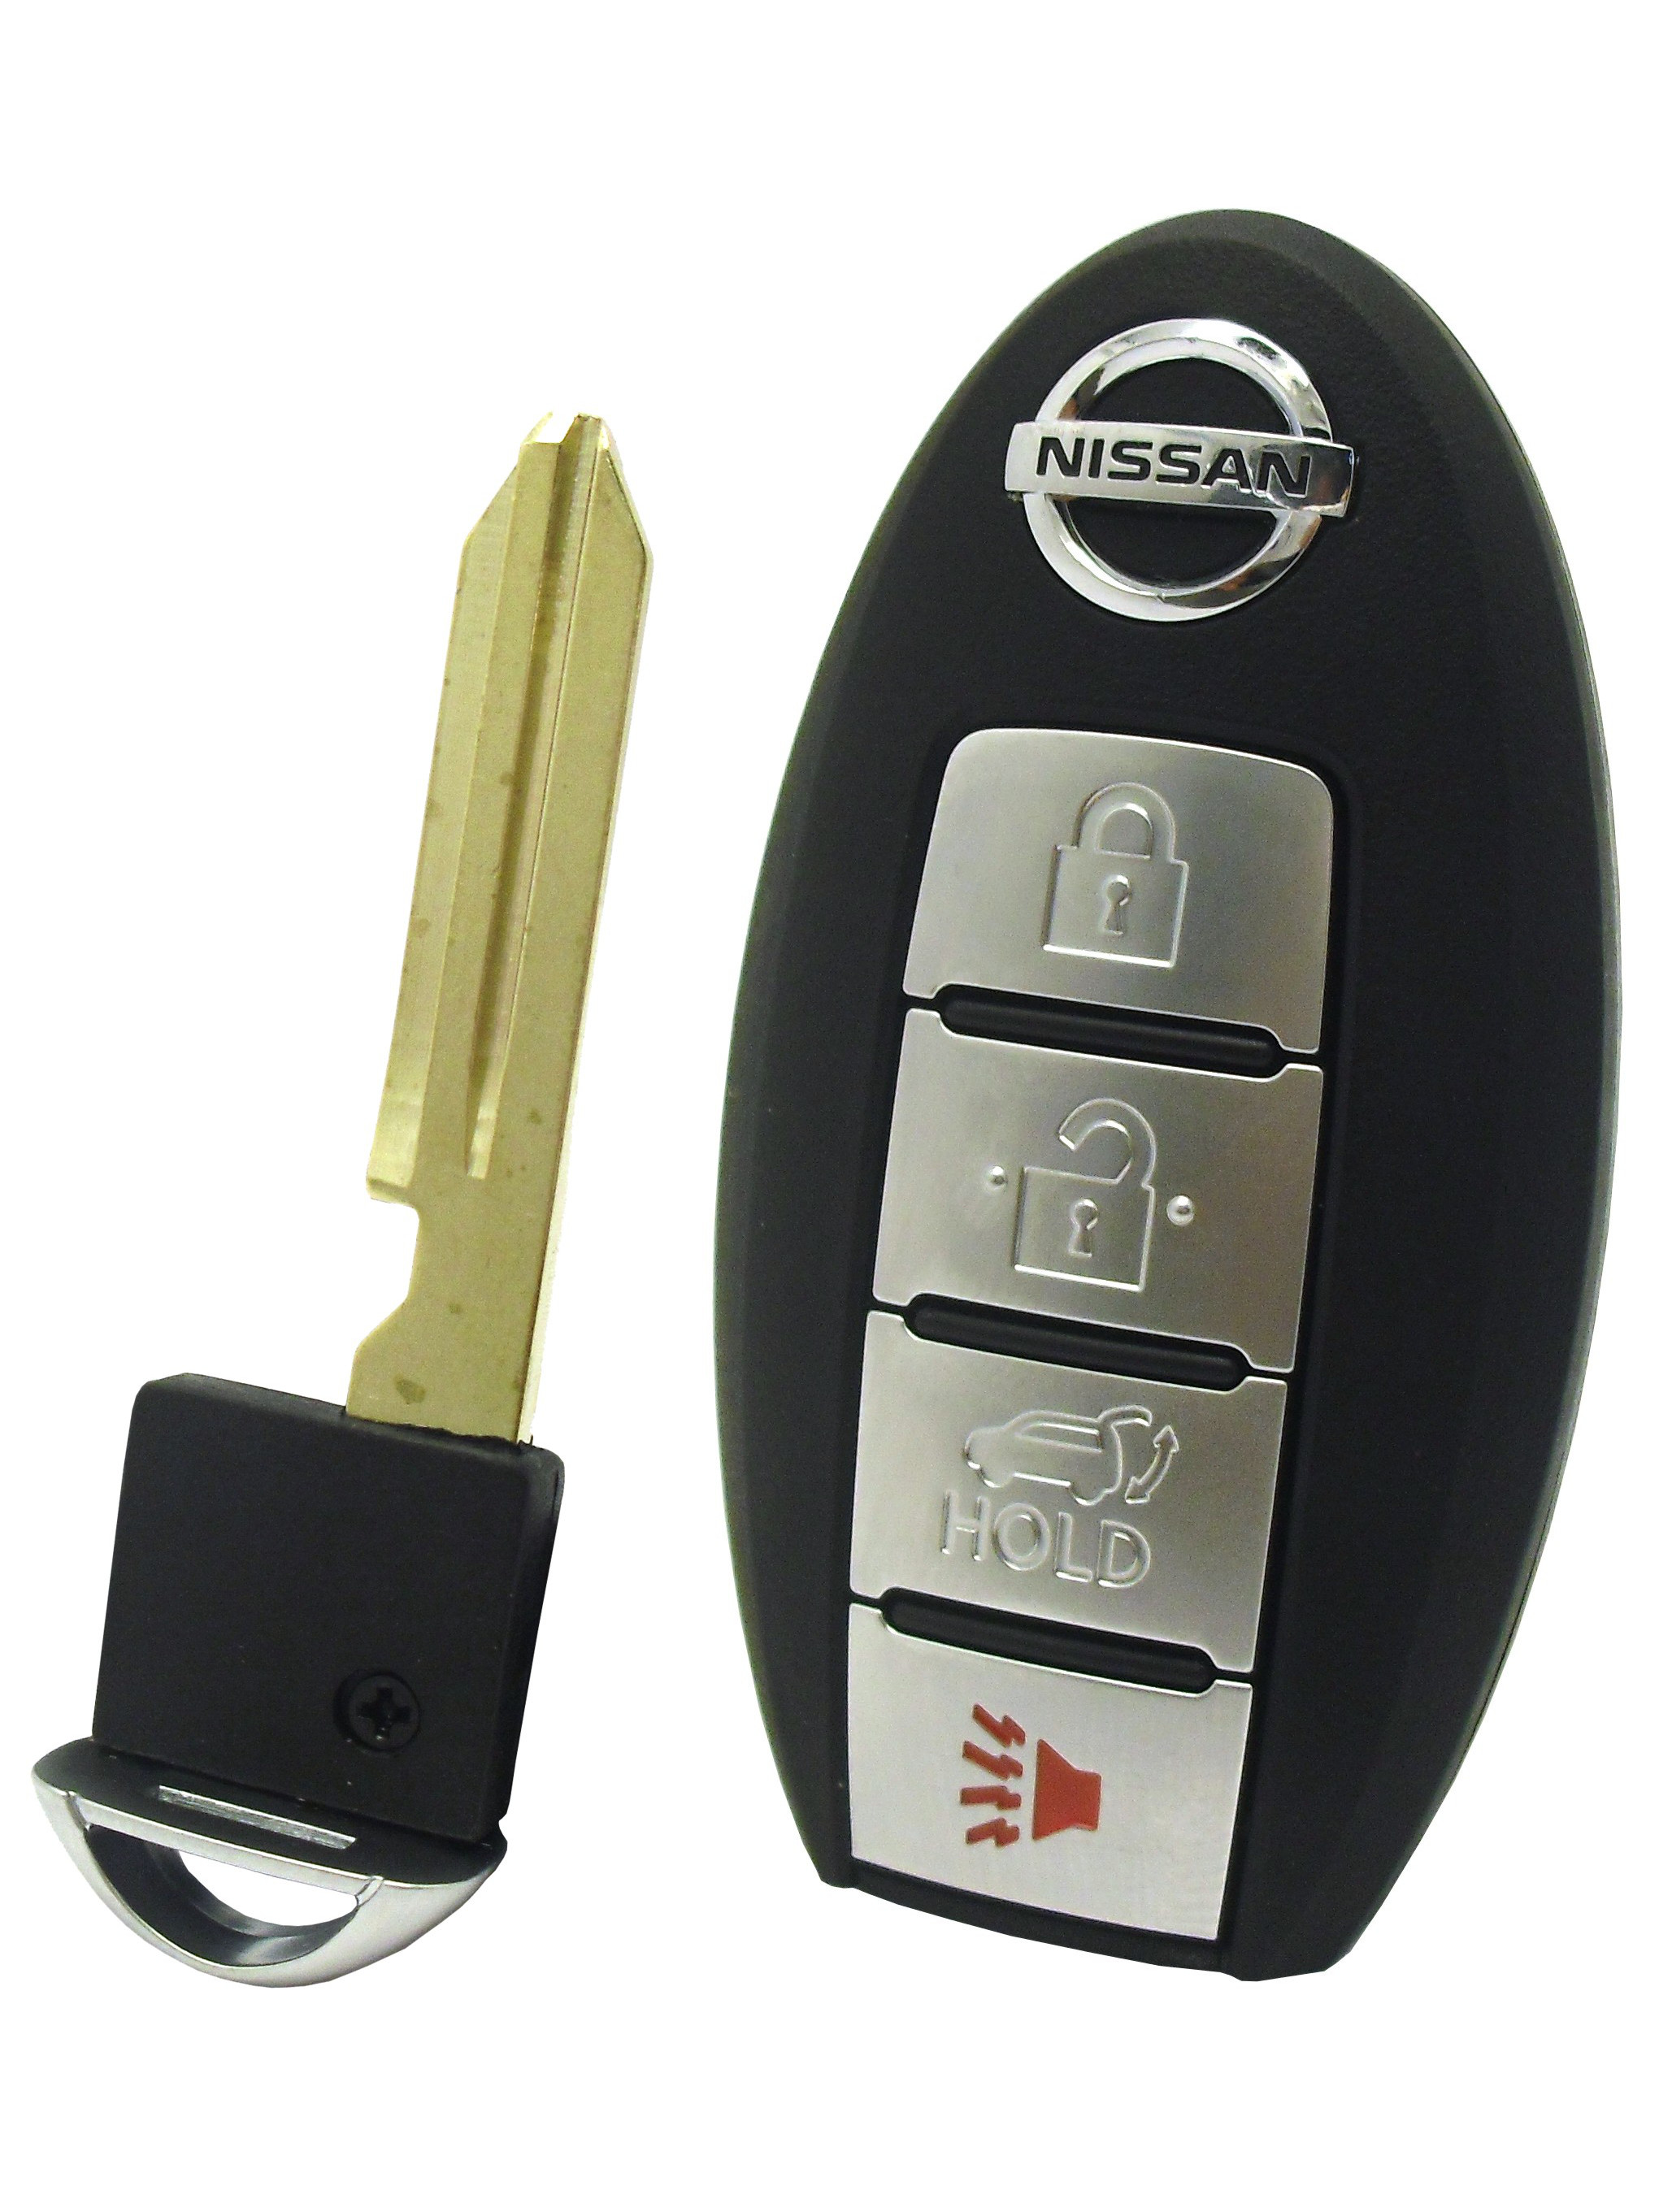 Remote Entry Smart Key - 4 Button